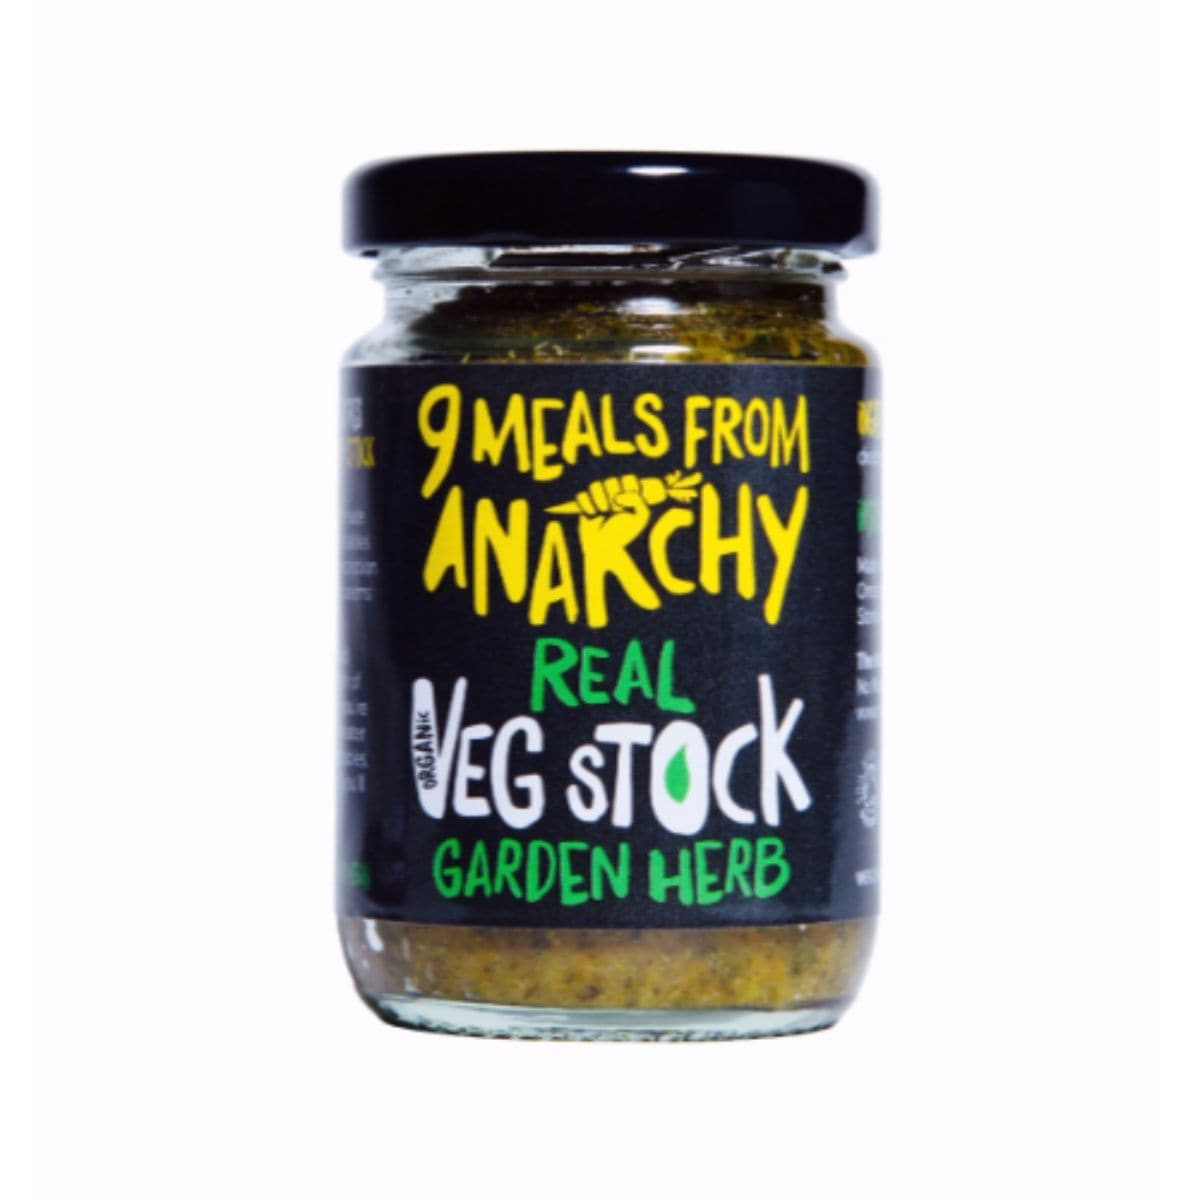 9 Meals From Anarchy Real Vegetable Stock - Garden Herb - 105g